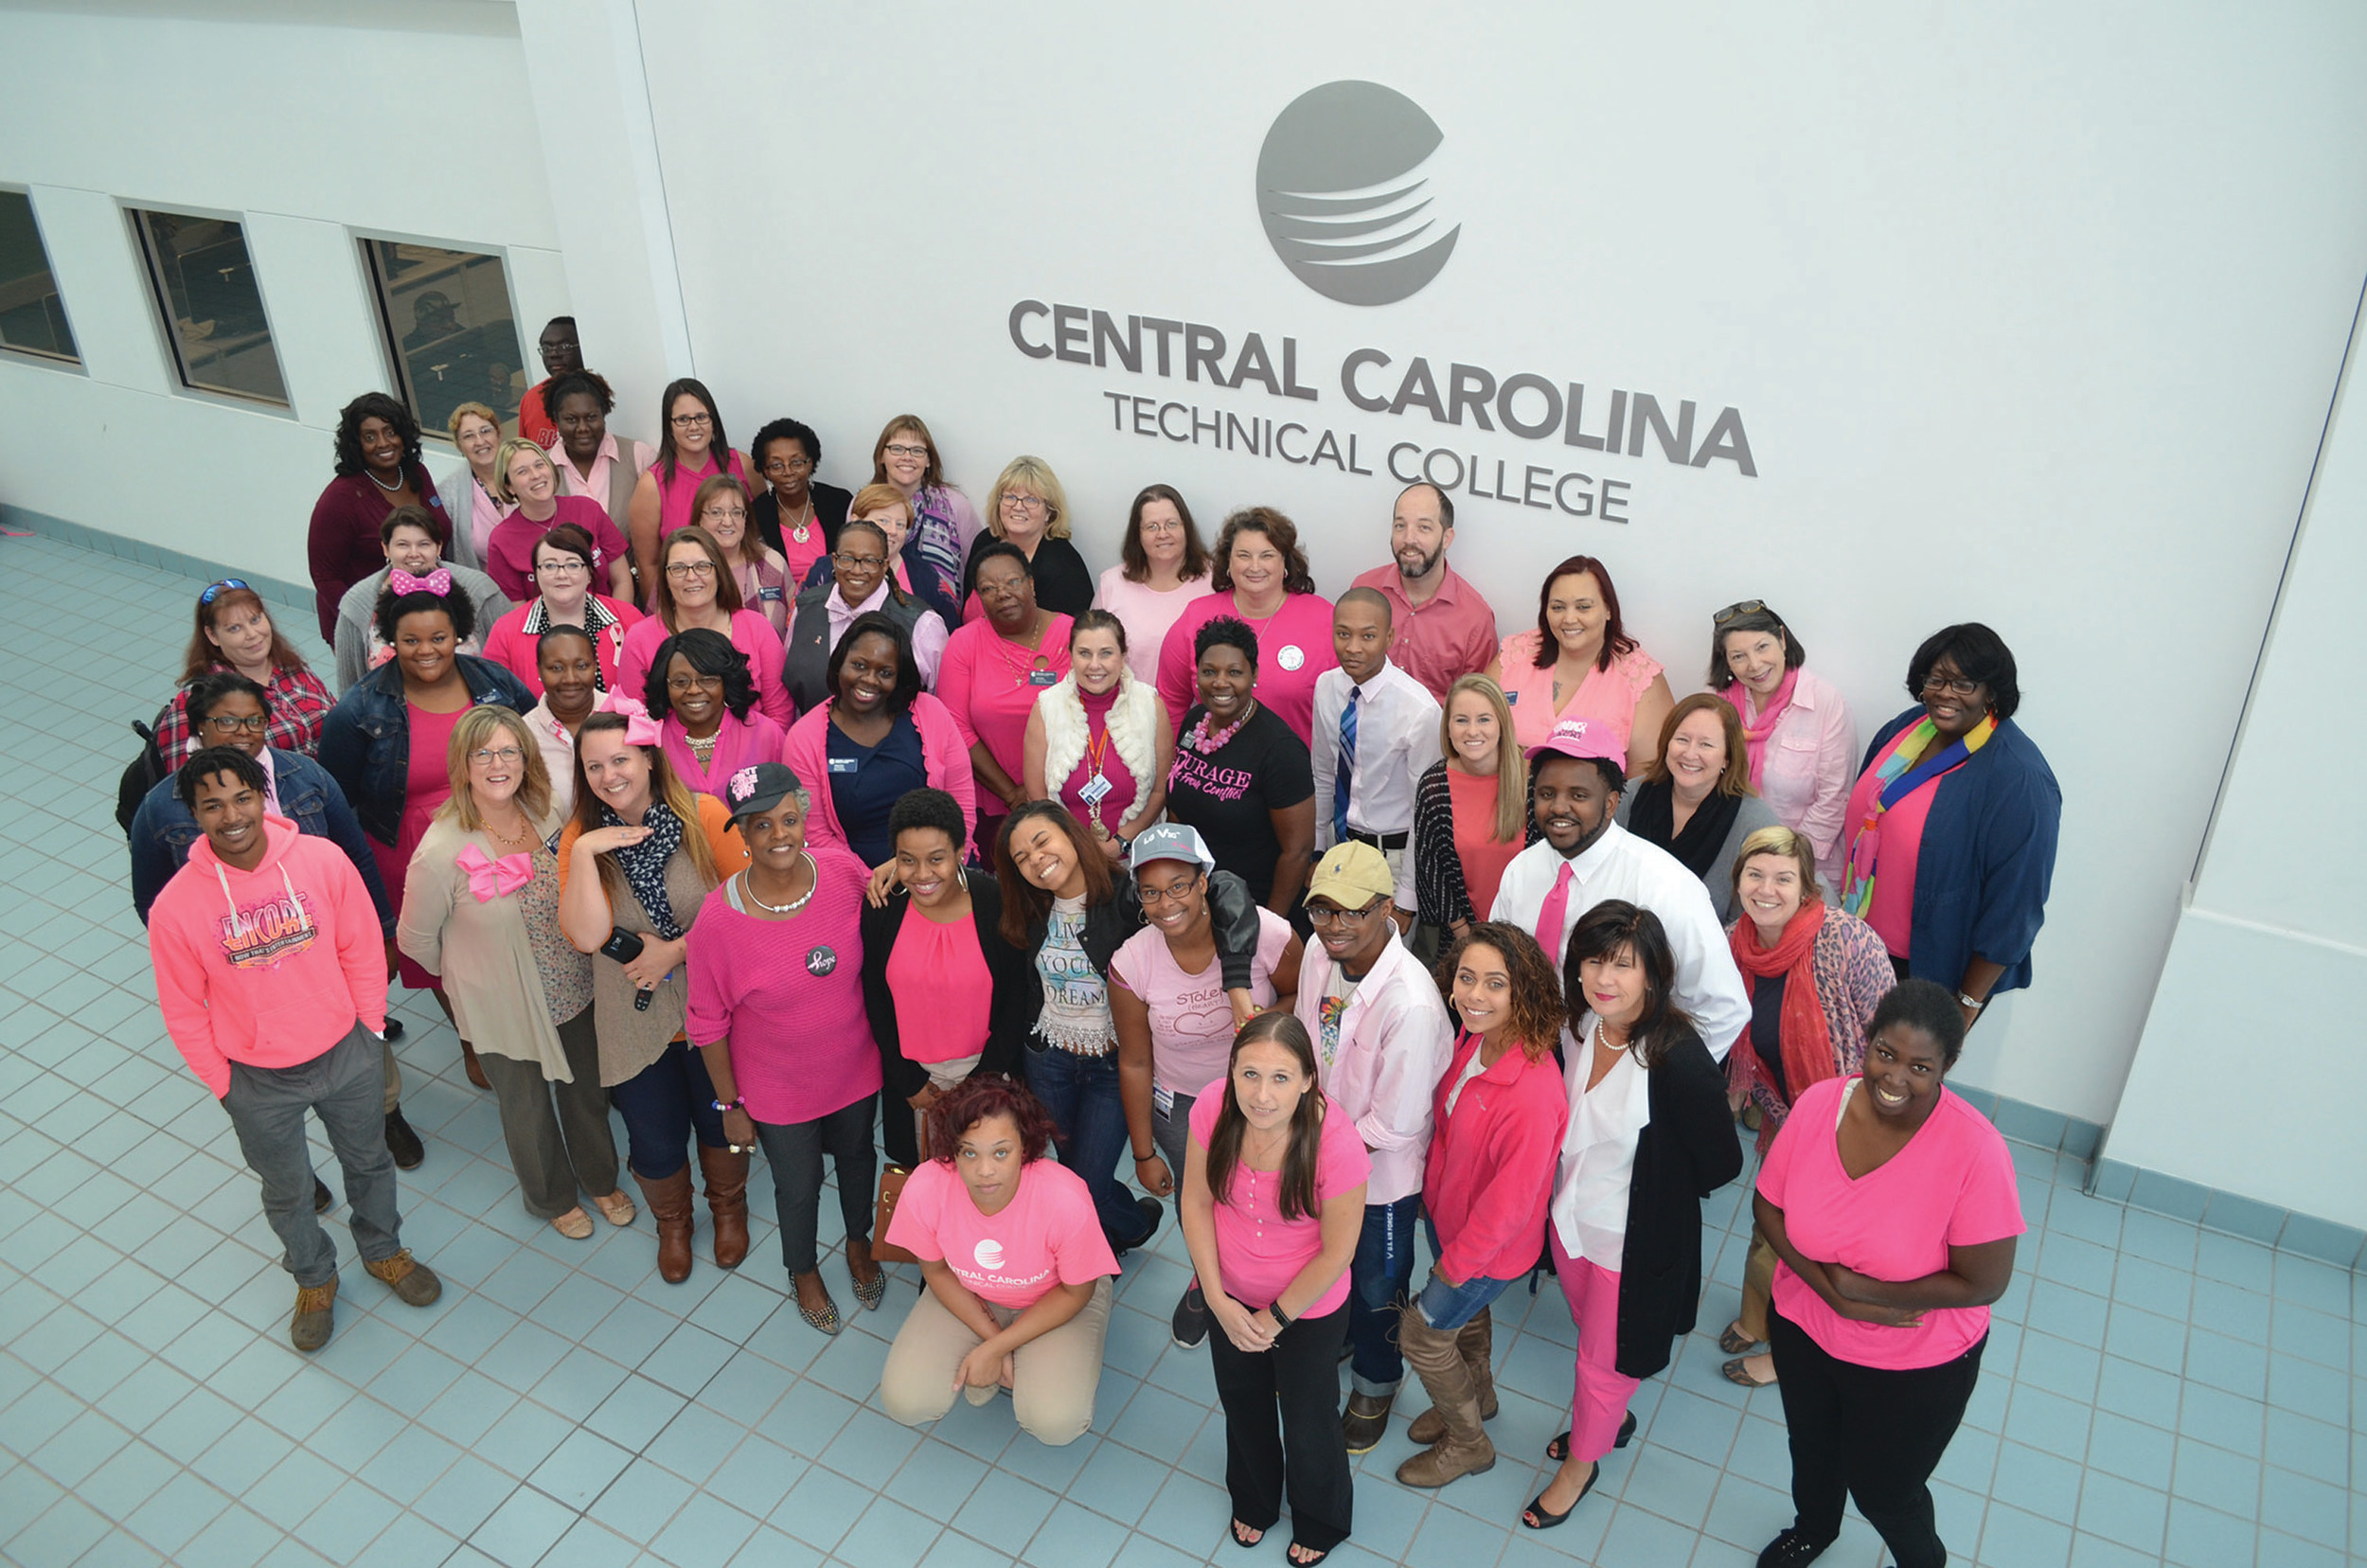 Central Carolina Technical College students, faculty and staff wore pink to support Breast Cancer Awareness Month at their annual Pink Out Day.